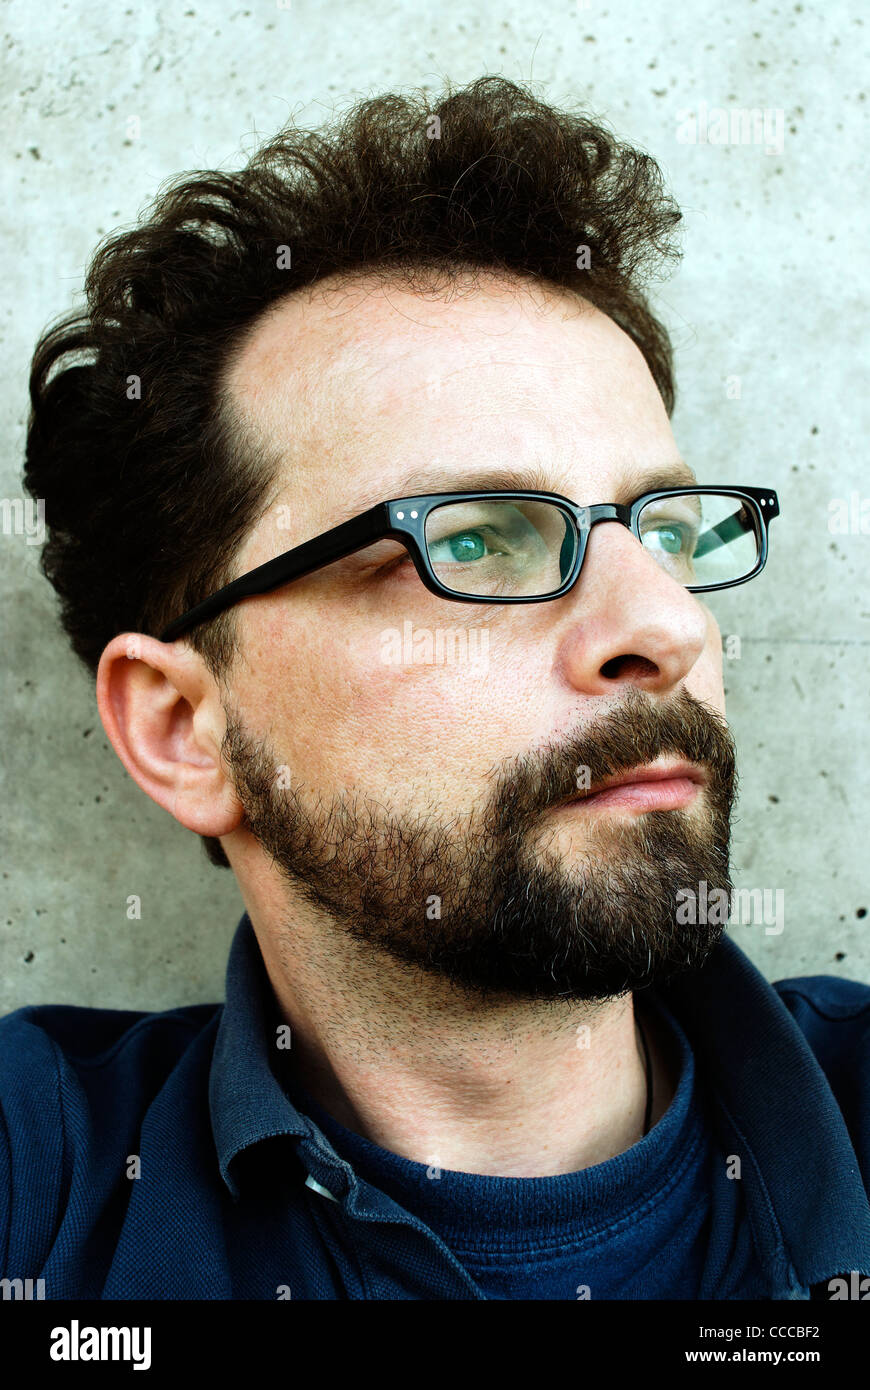 Man with glasses, Age 40 - Stock Image